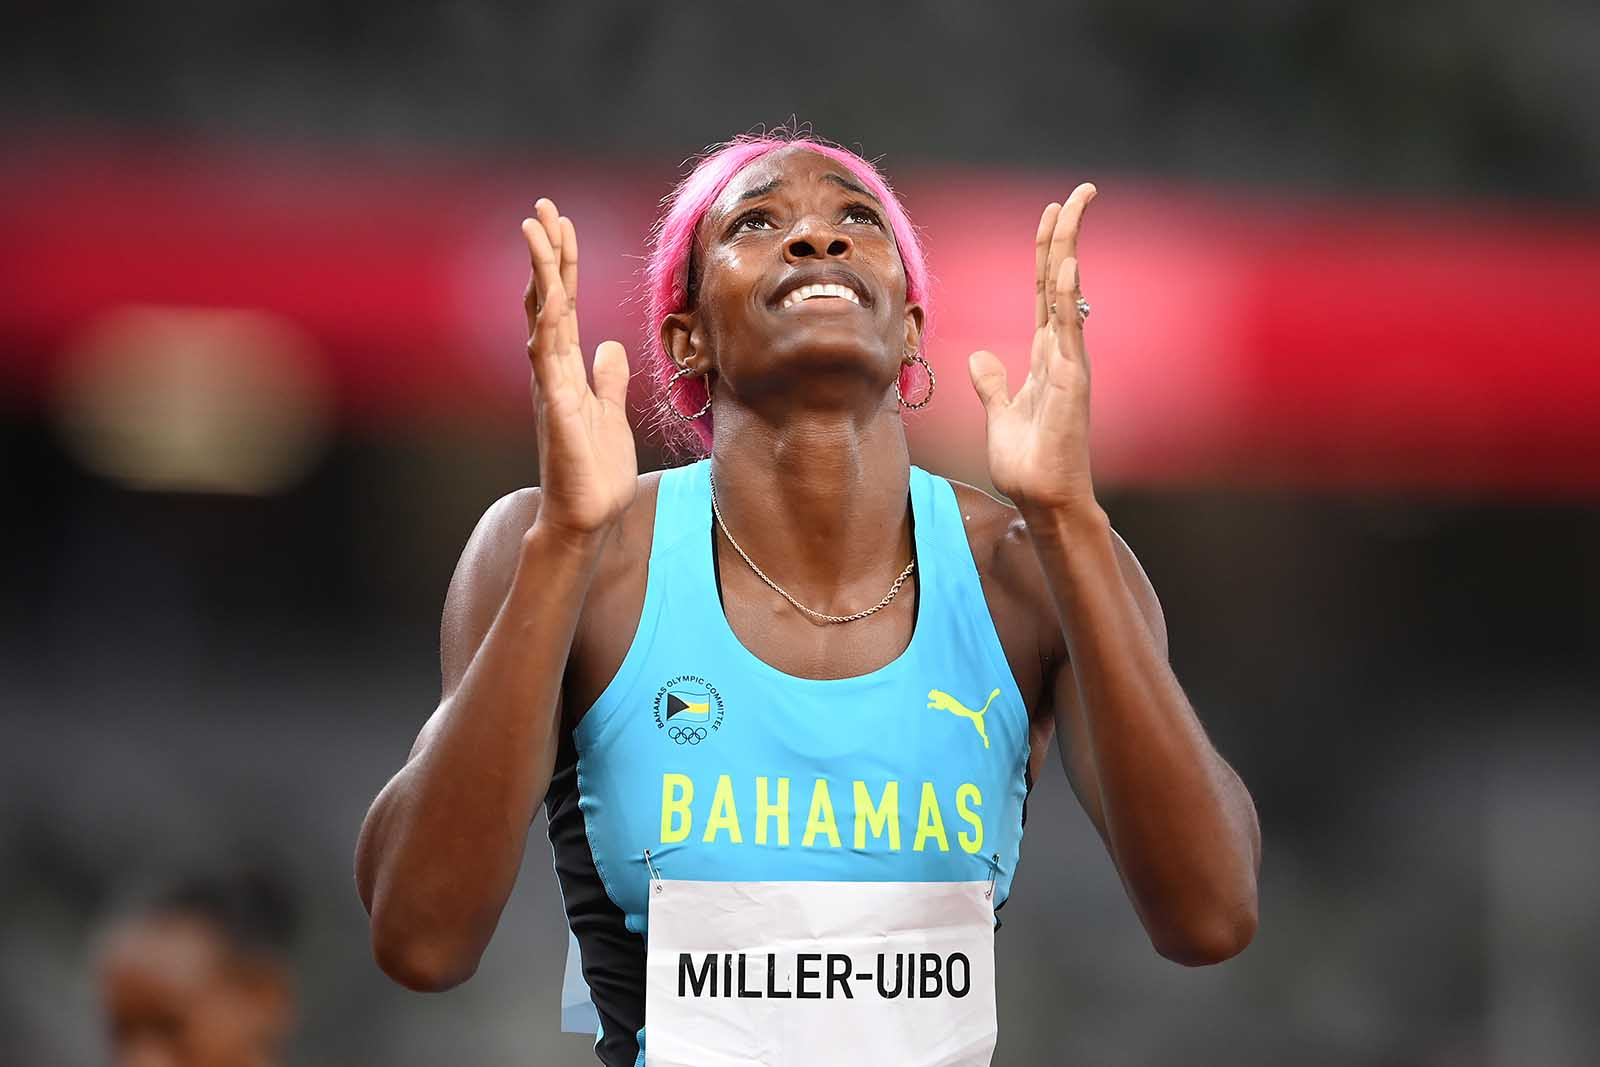 Shaunae Miller-Uibo of Team Bahamas reacts after winning the gold medal in the women's 400 meter final on August 6.